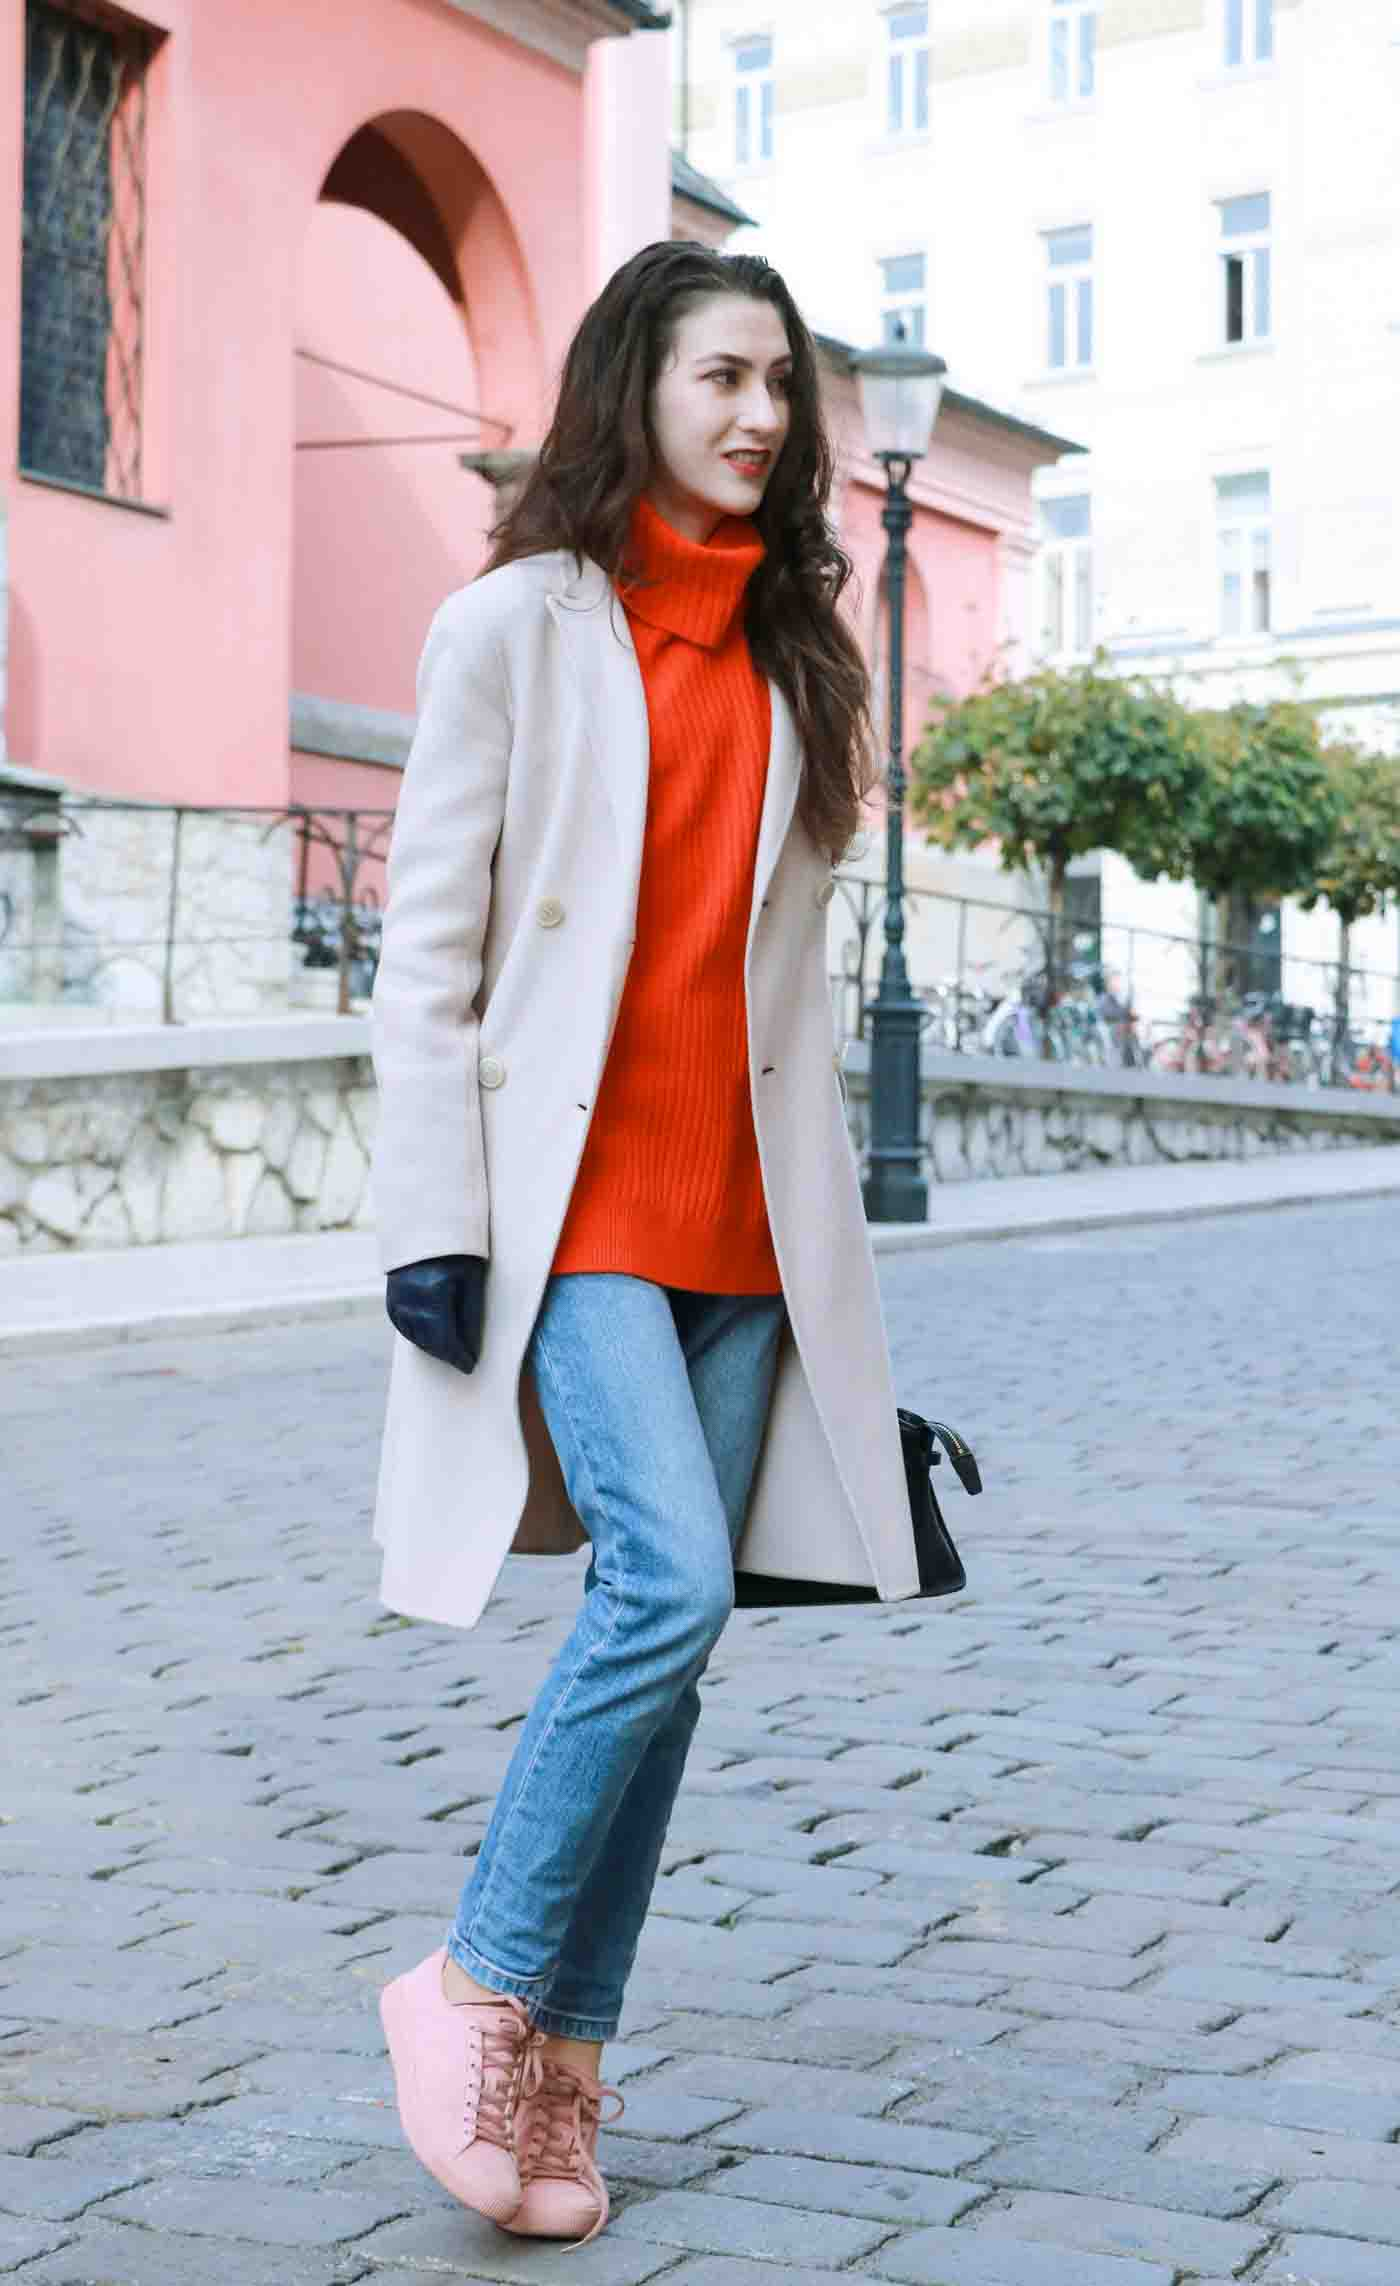 Fashion Blogger Veronika Lipar of Brunette from Wall wearing red Ganni turtleneck sweater, light blue jeans, dusty pink sneakers and Weekend Maxmara double breasted coat